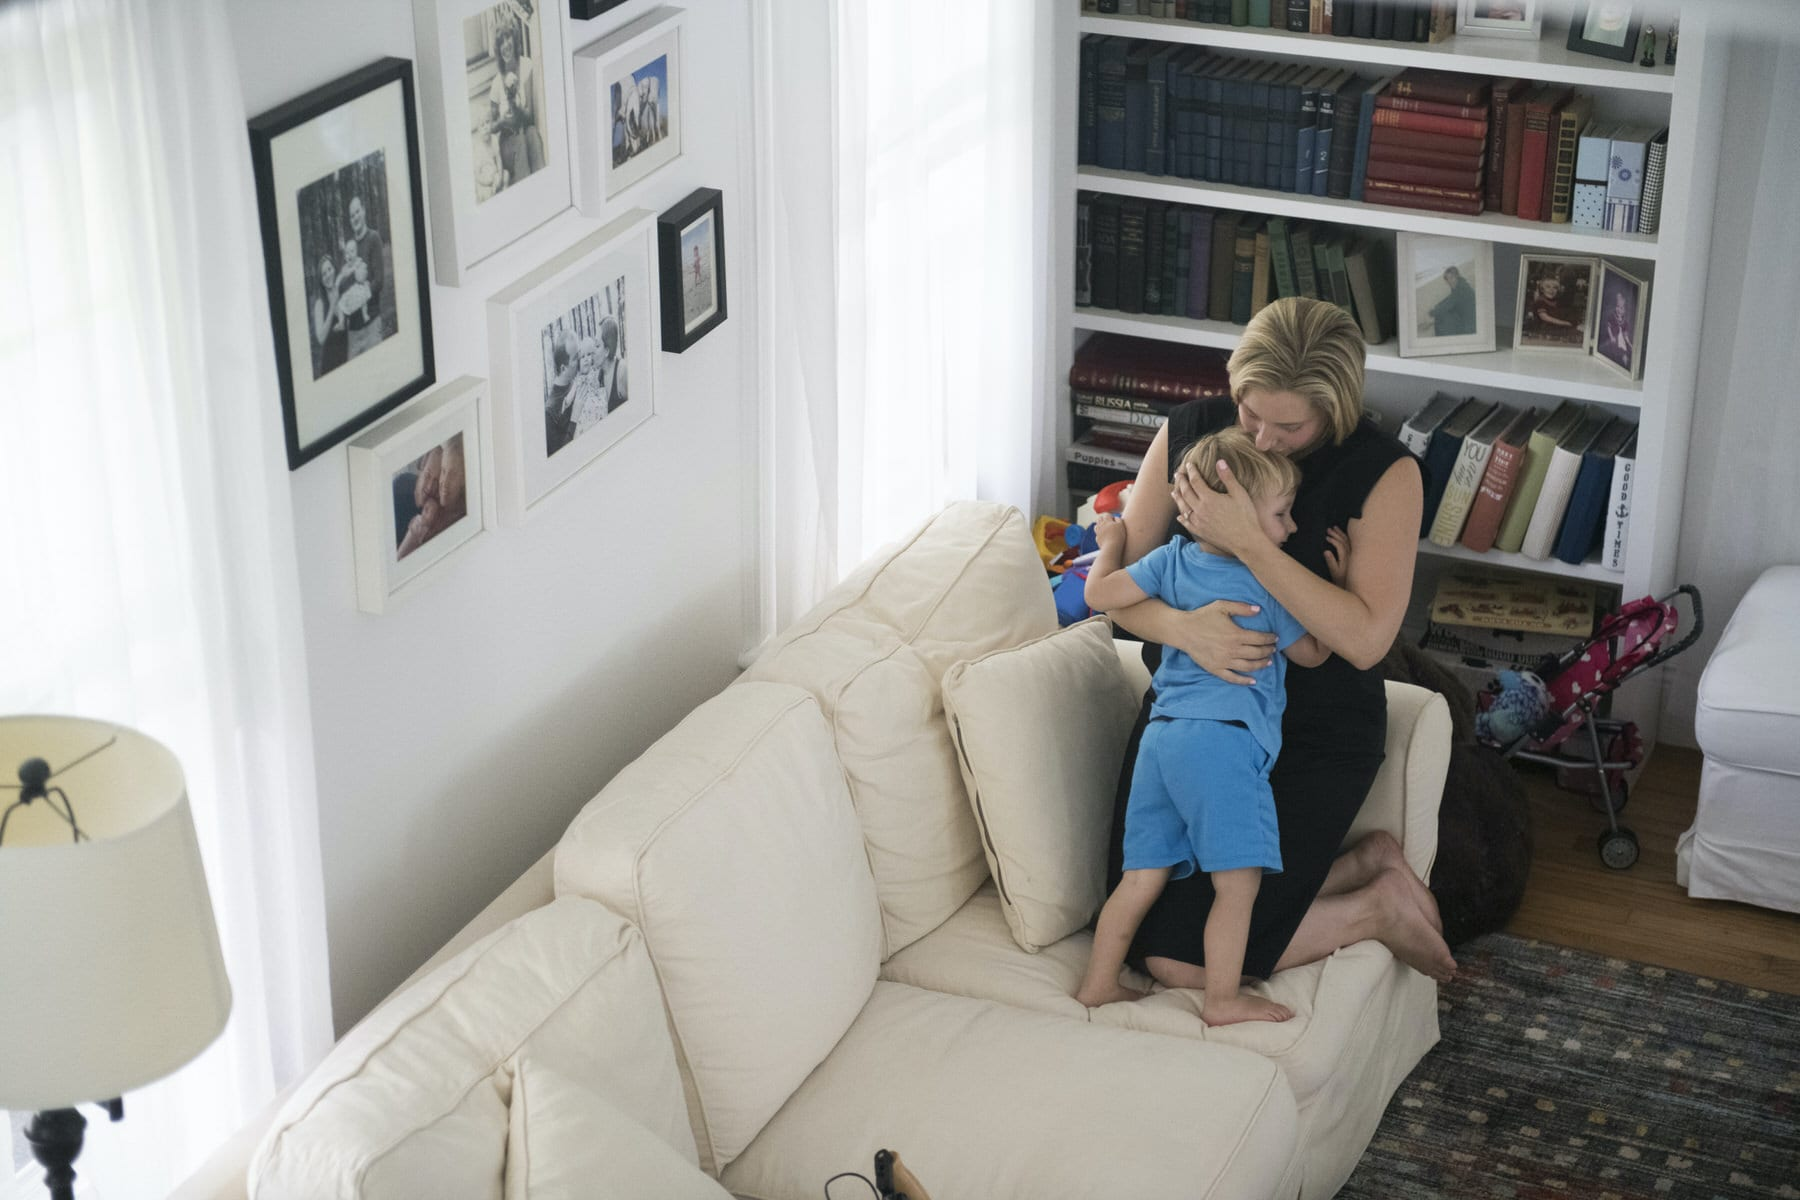 A woman embraces her son while sitting on a couch.